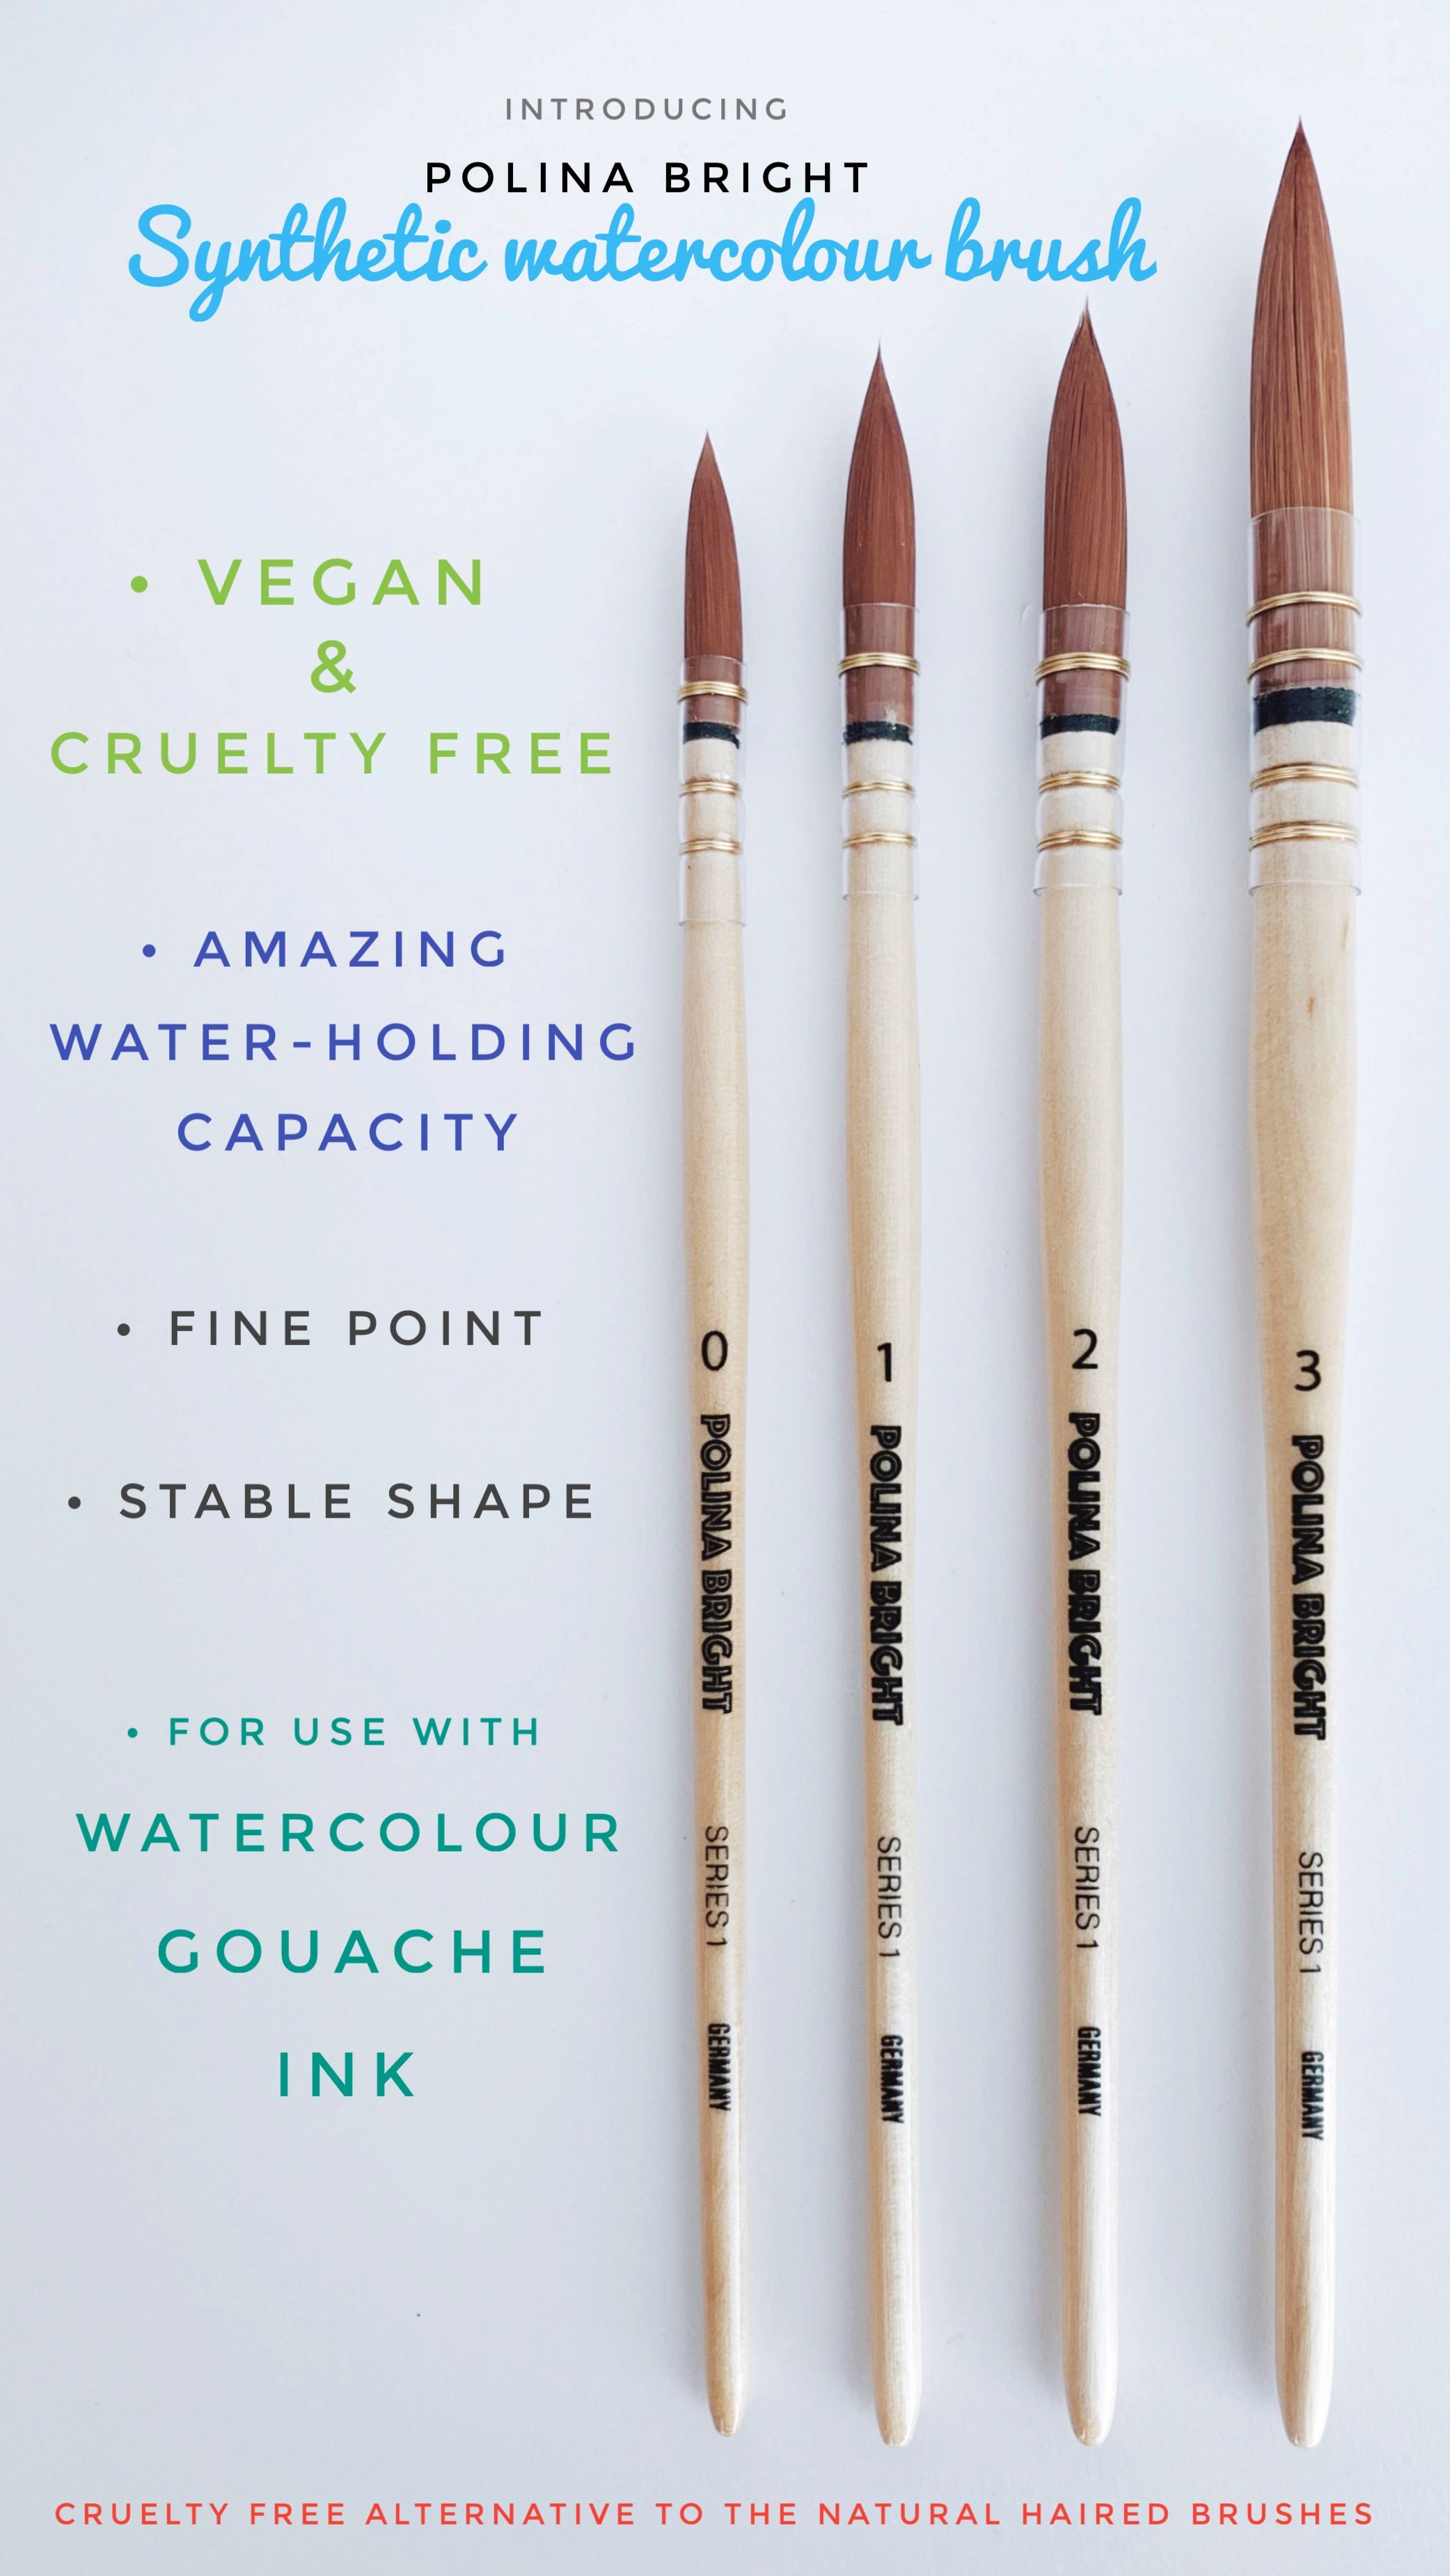 Professional Watercolour Brush Cruelty Free Vegan Watercolor